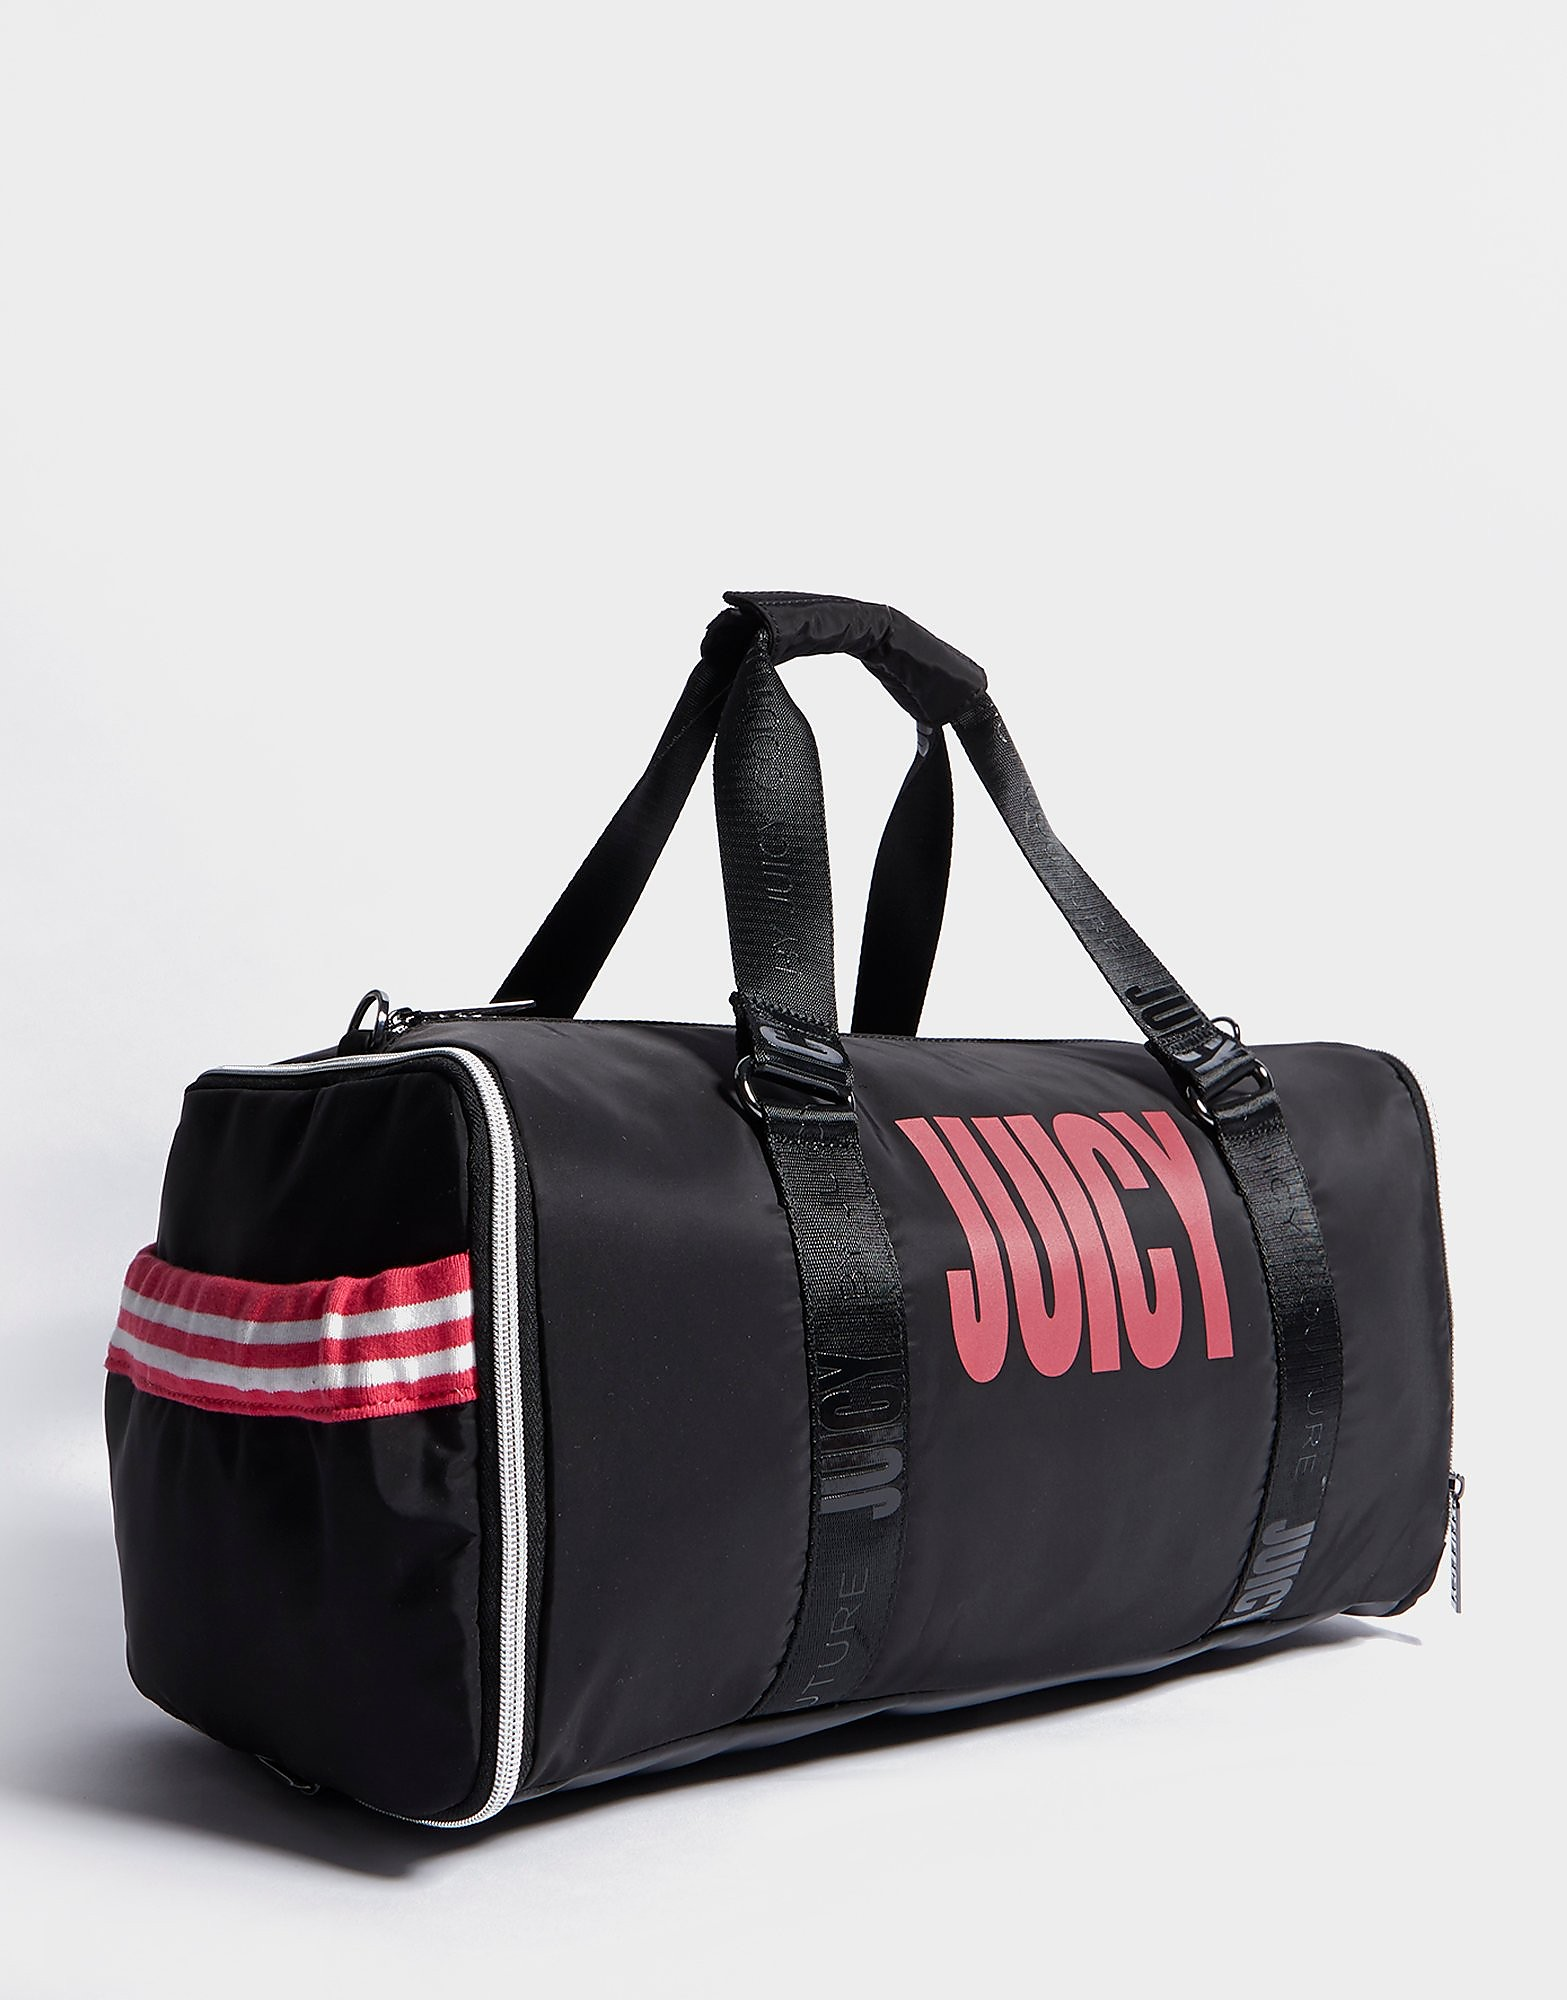 Juicy by Juicy Couture Holdall